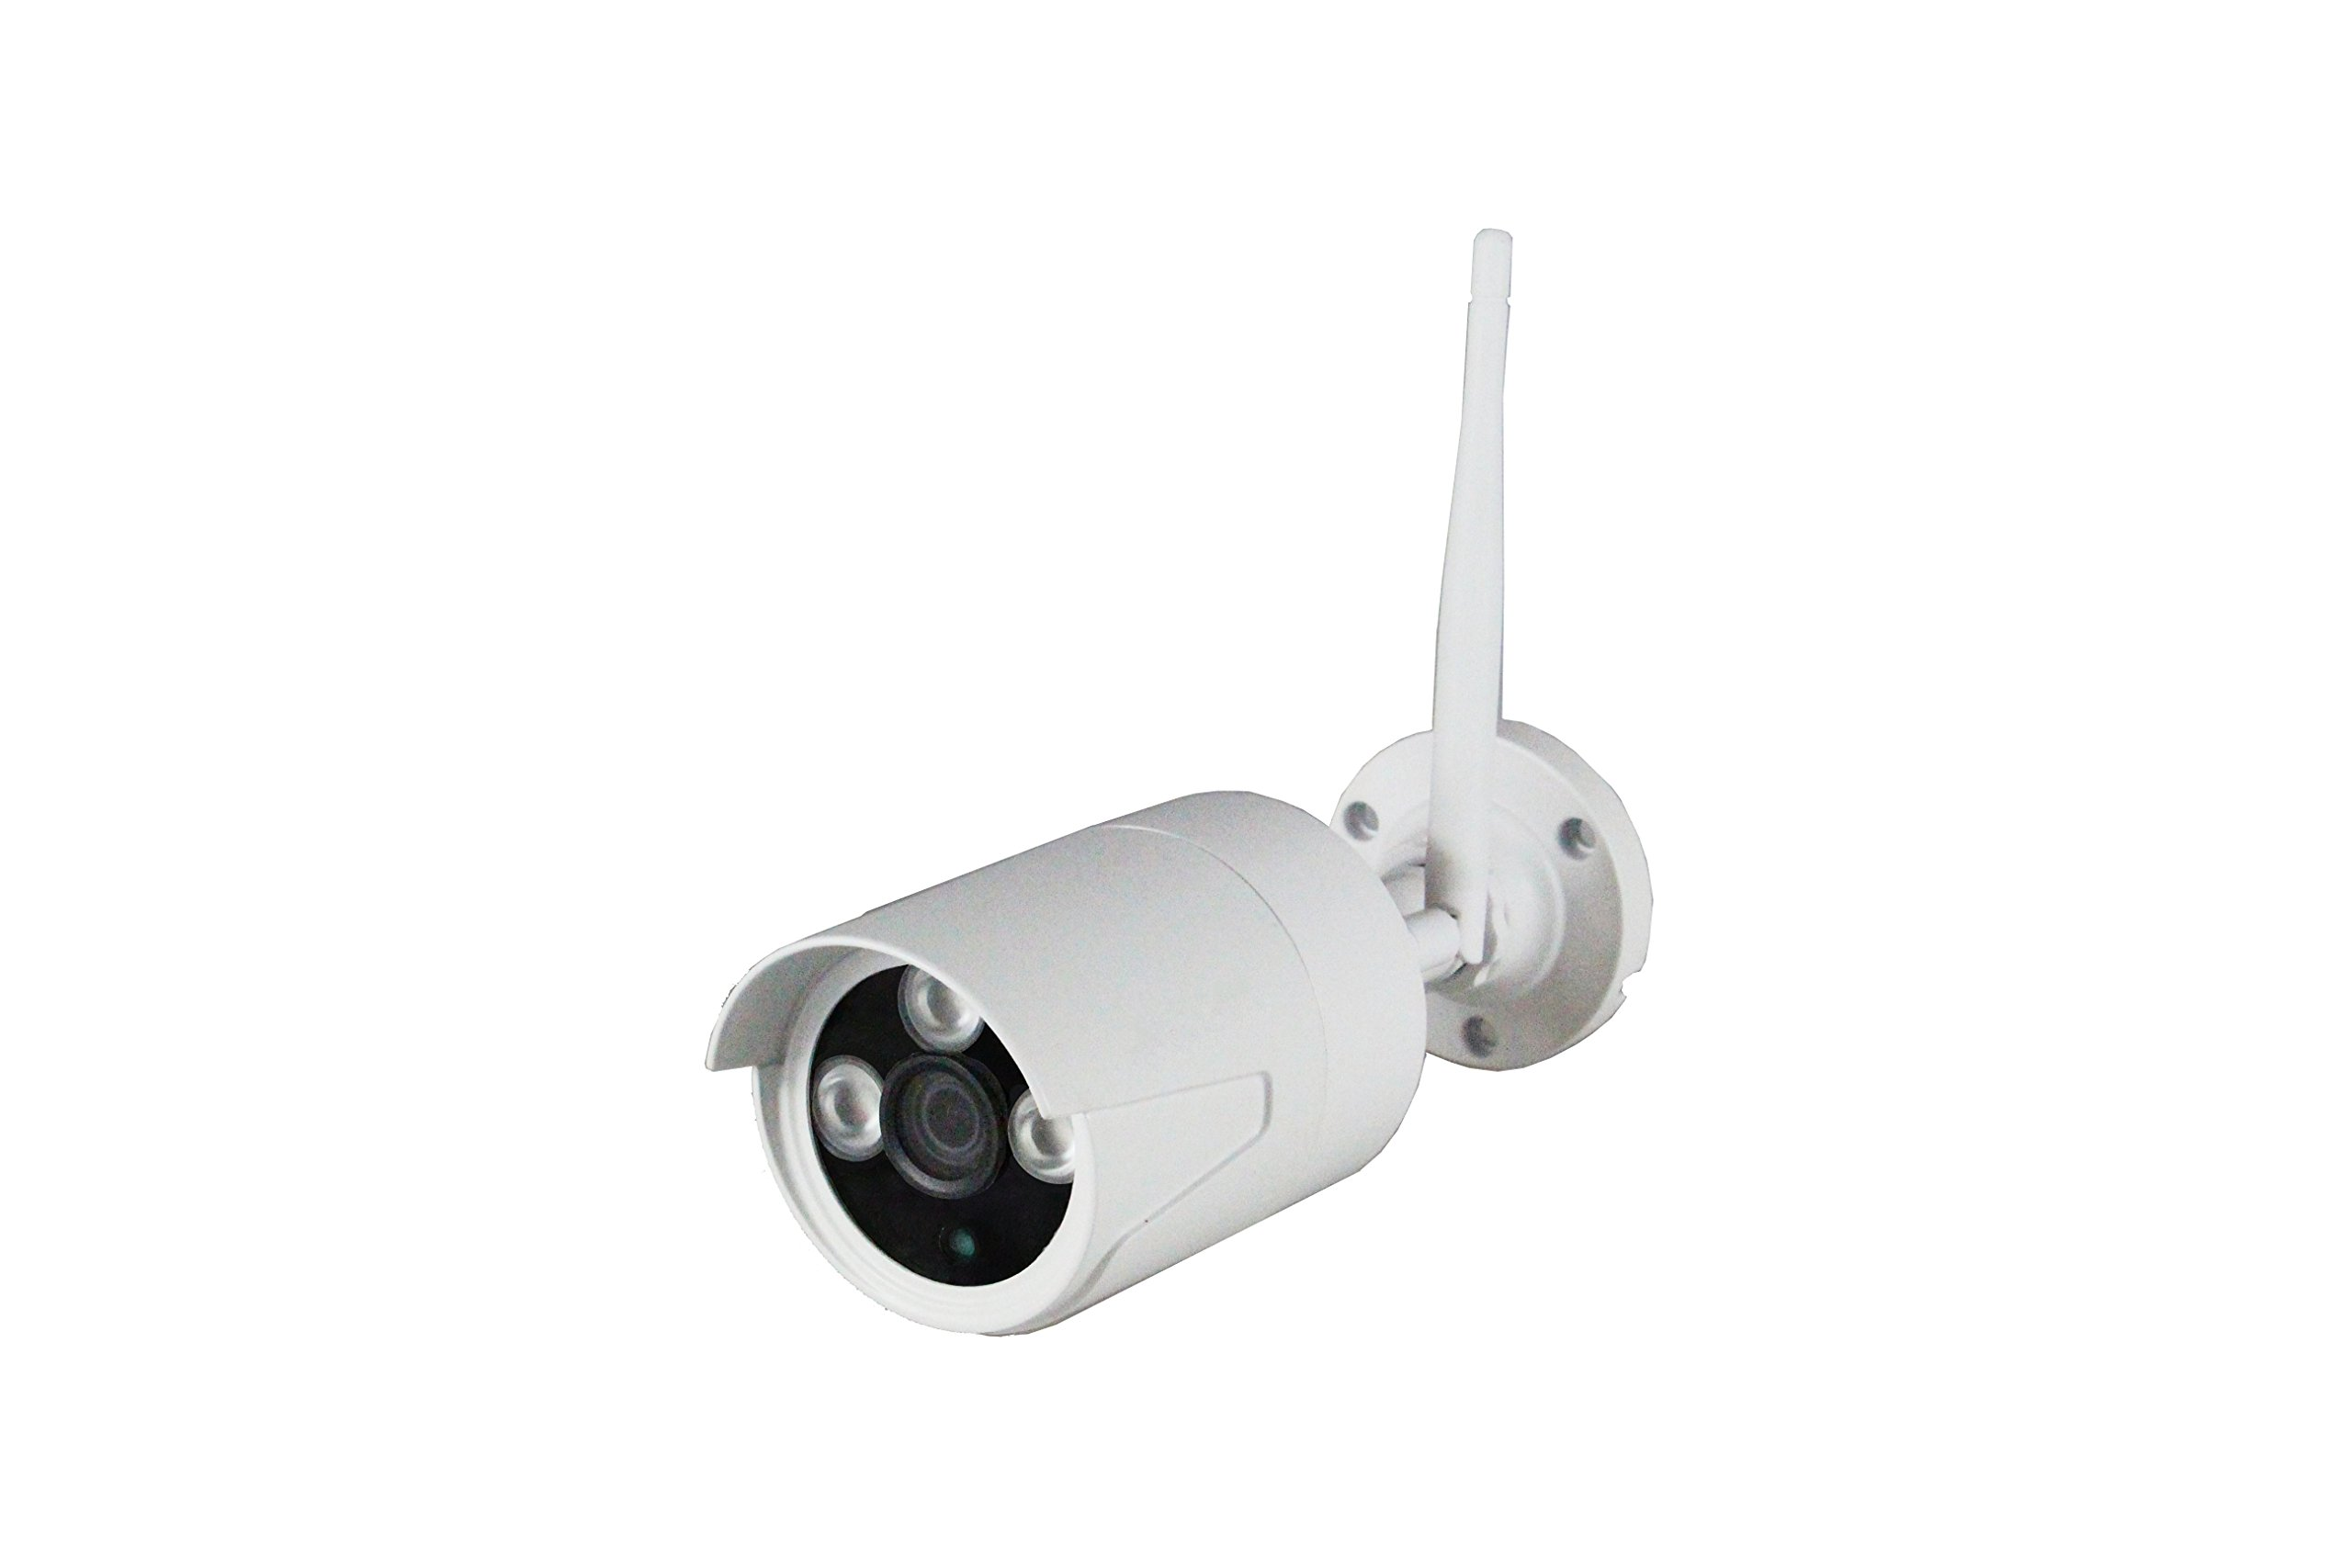 GXA HD IP wireless Network camera 1.3MP (960P) Weatherproof 1/3 CMOS 3.6mm Outdoor cctv camera with 100ft(30m) Night Vision